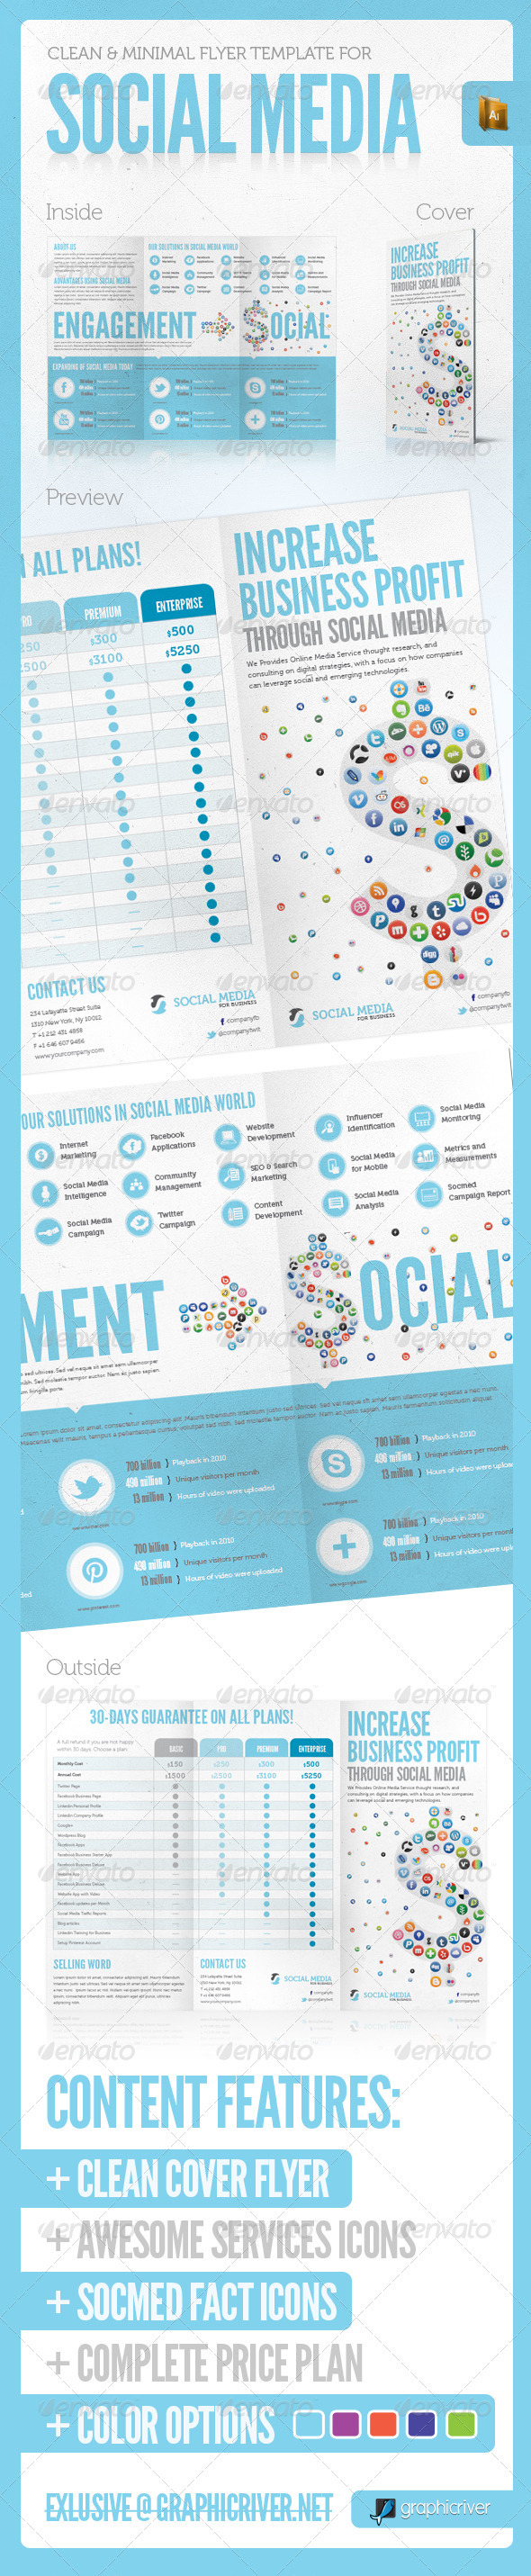 GraphicRiver SOCIAL MEDIA PRINT TEMPLATE VOL 3 2910164